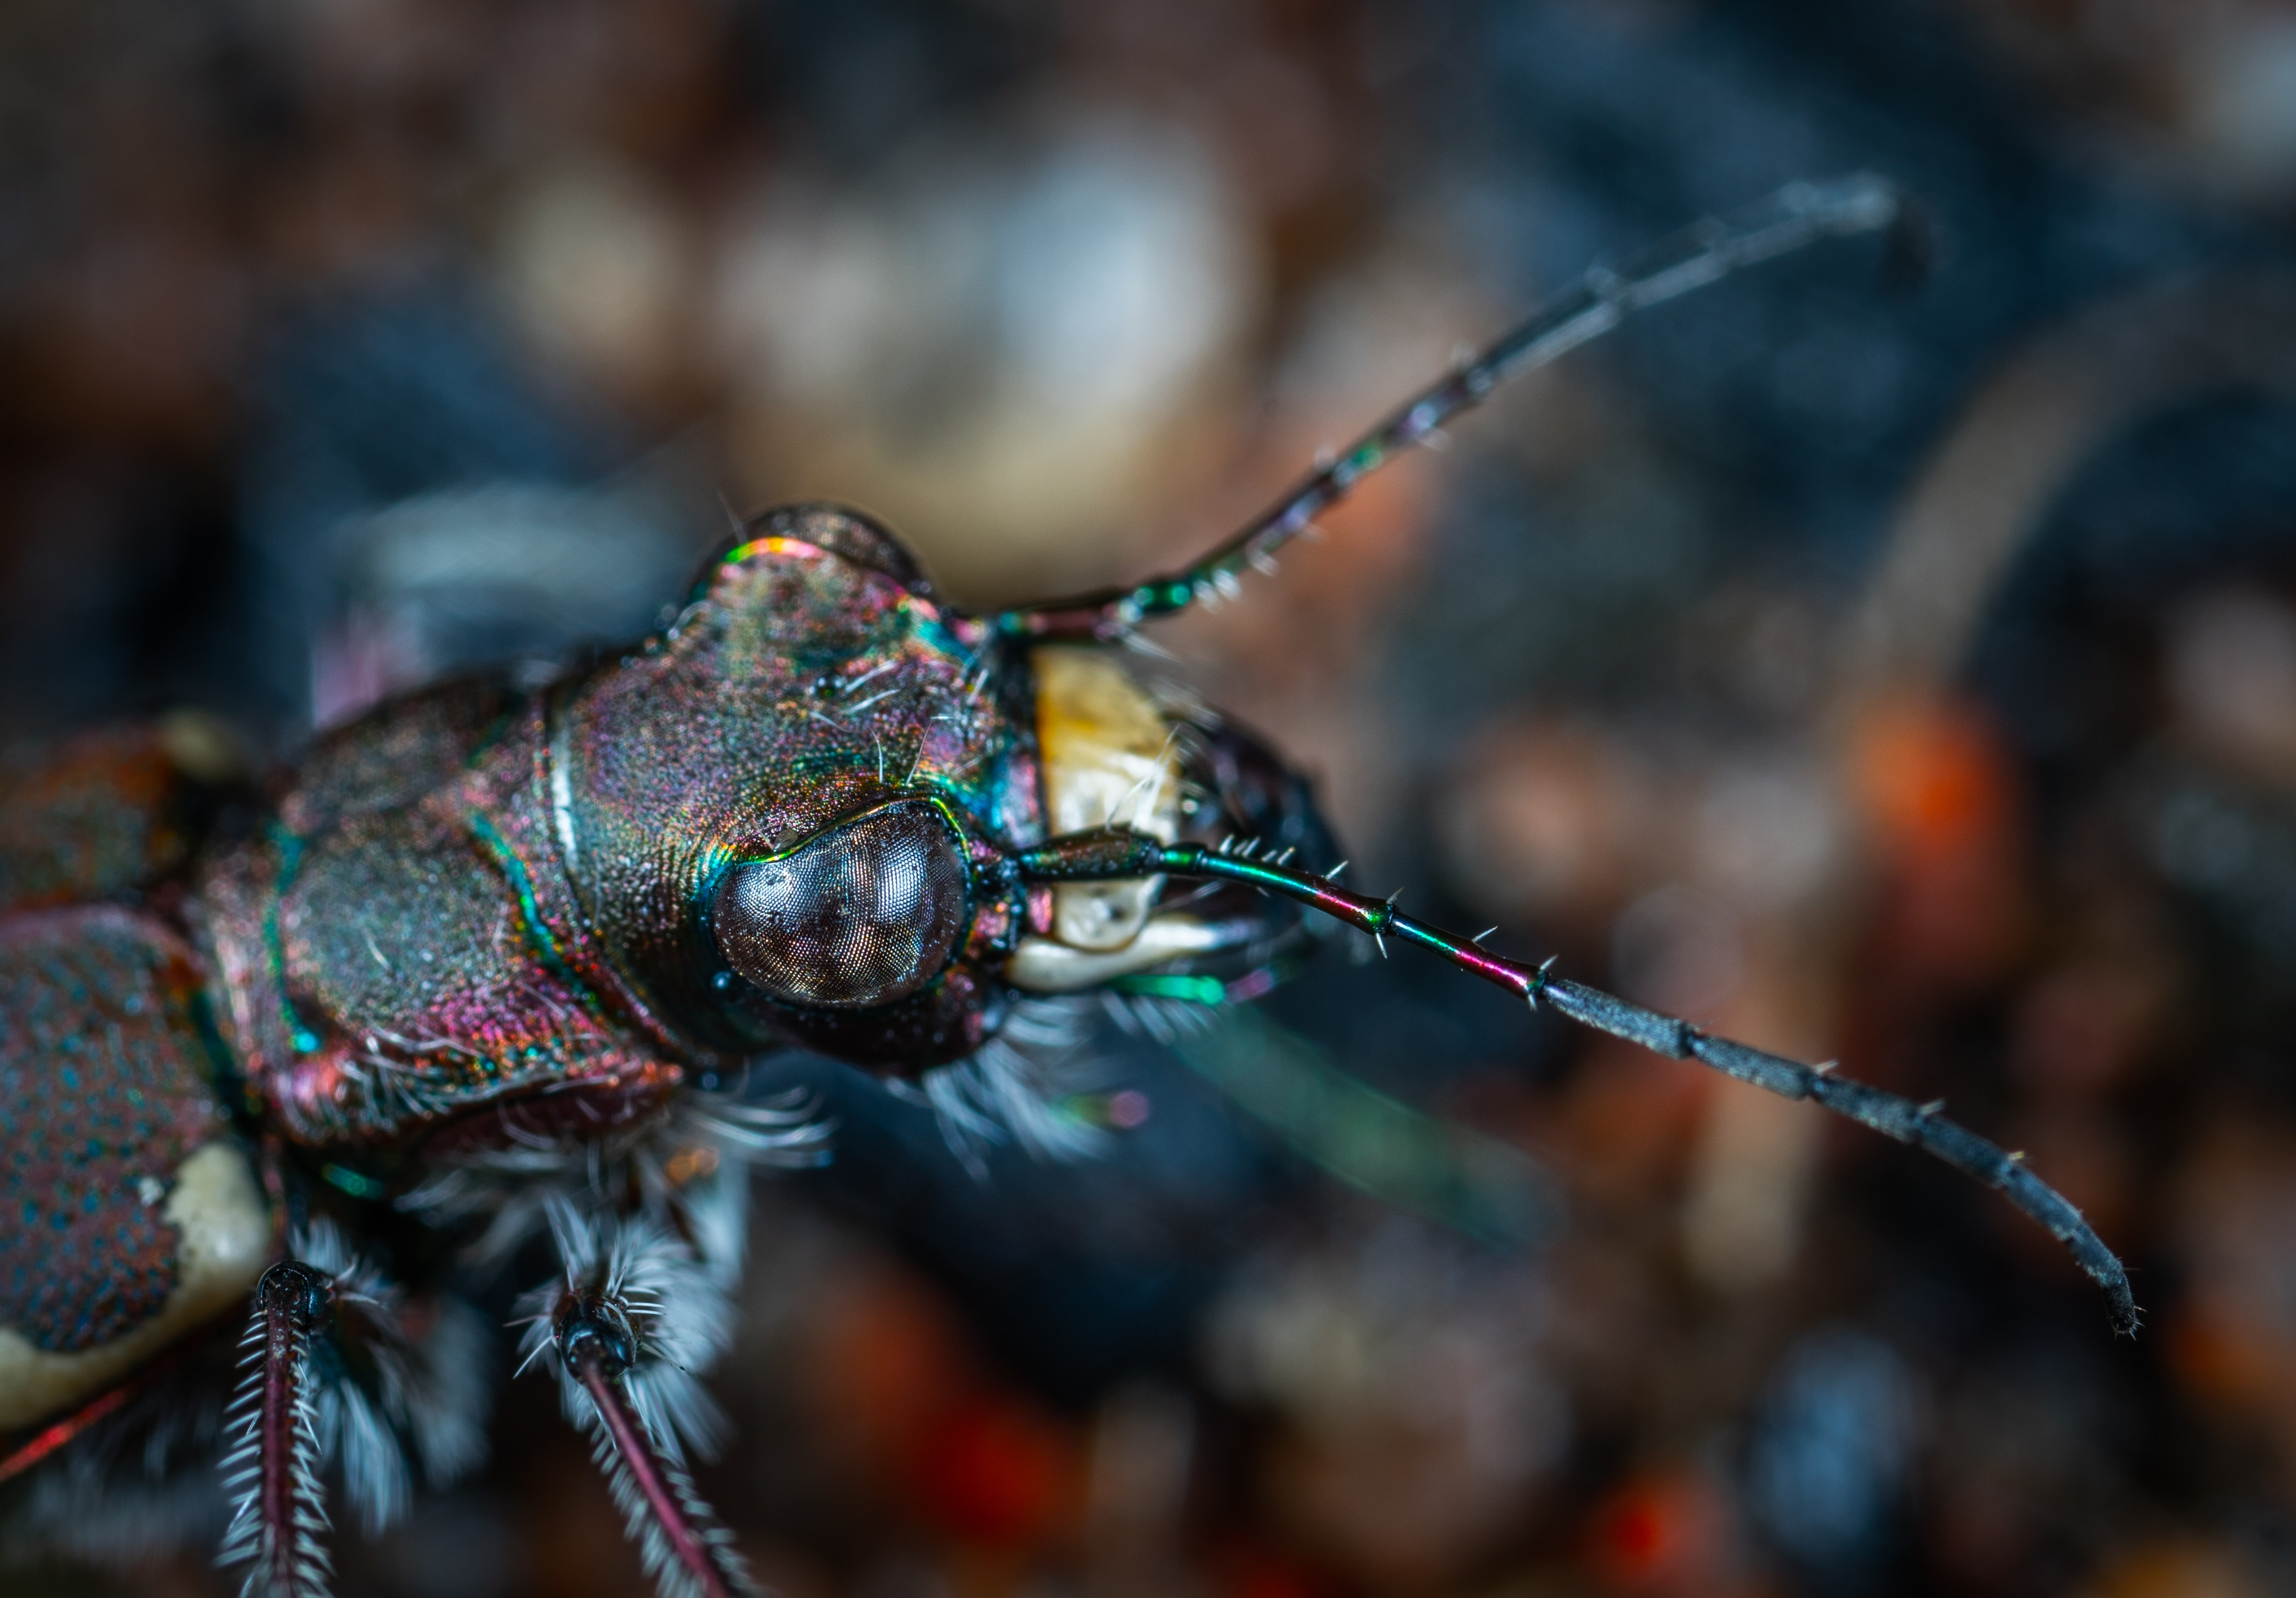 macro photography of black insect